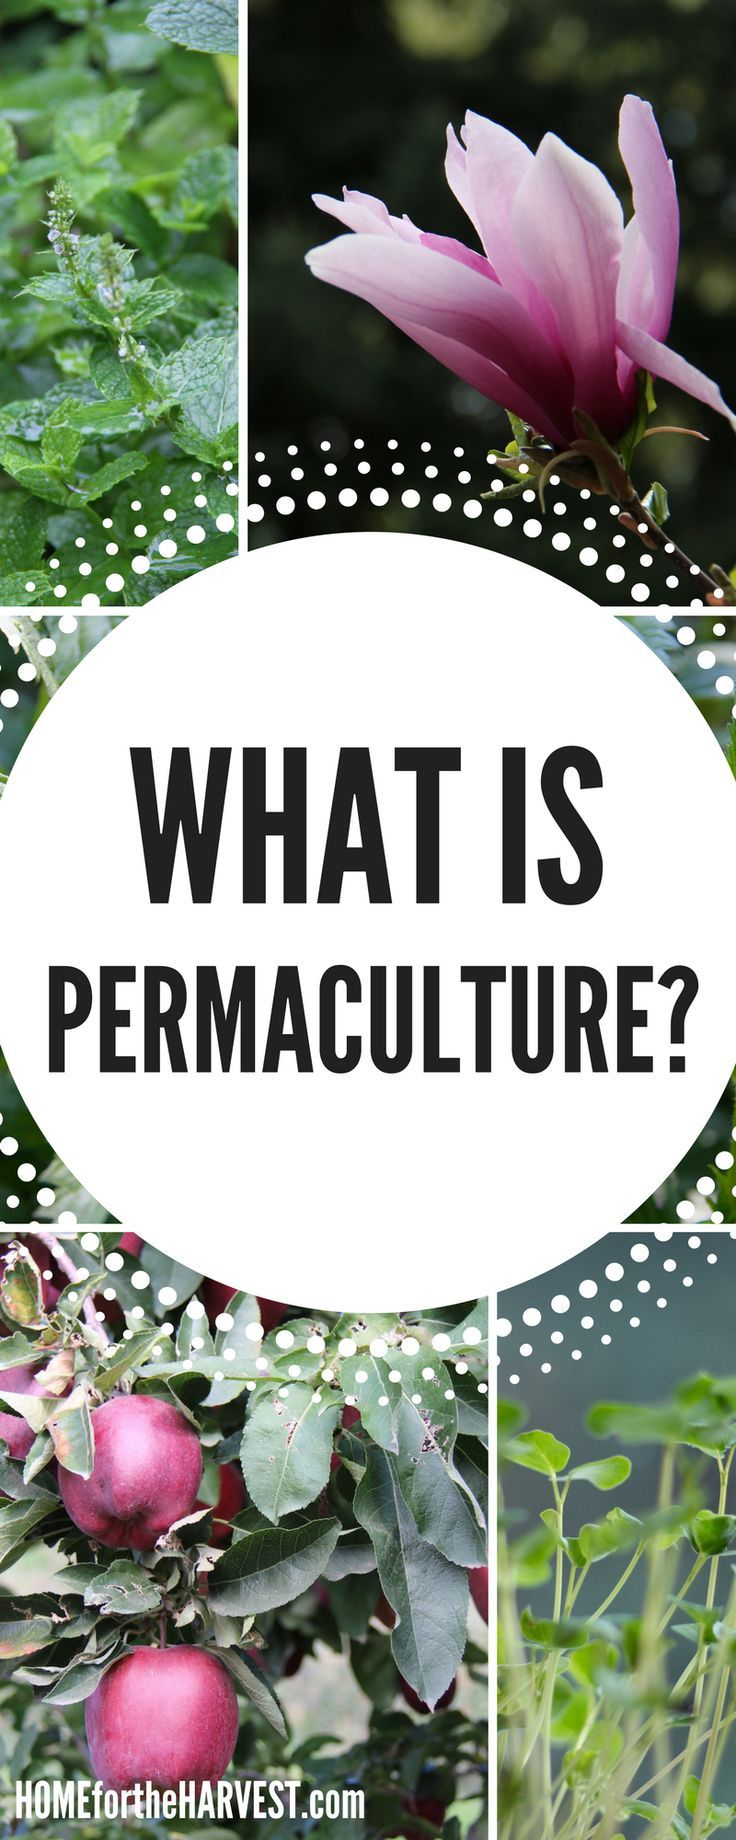 Wondering what permaculture is? Is it just organic gardening...or is there something more? Check out this post to understand what permaculture is and how to use it in your organic garden!